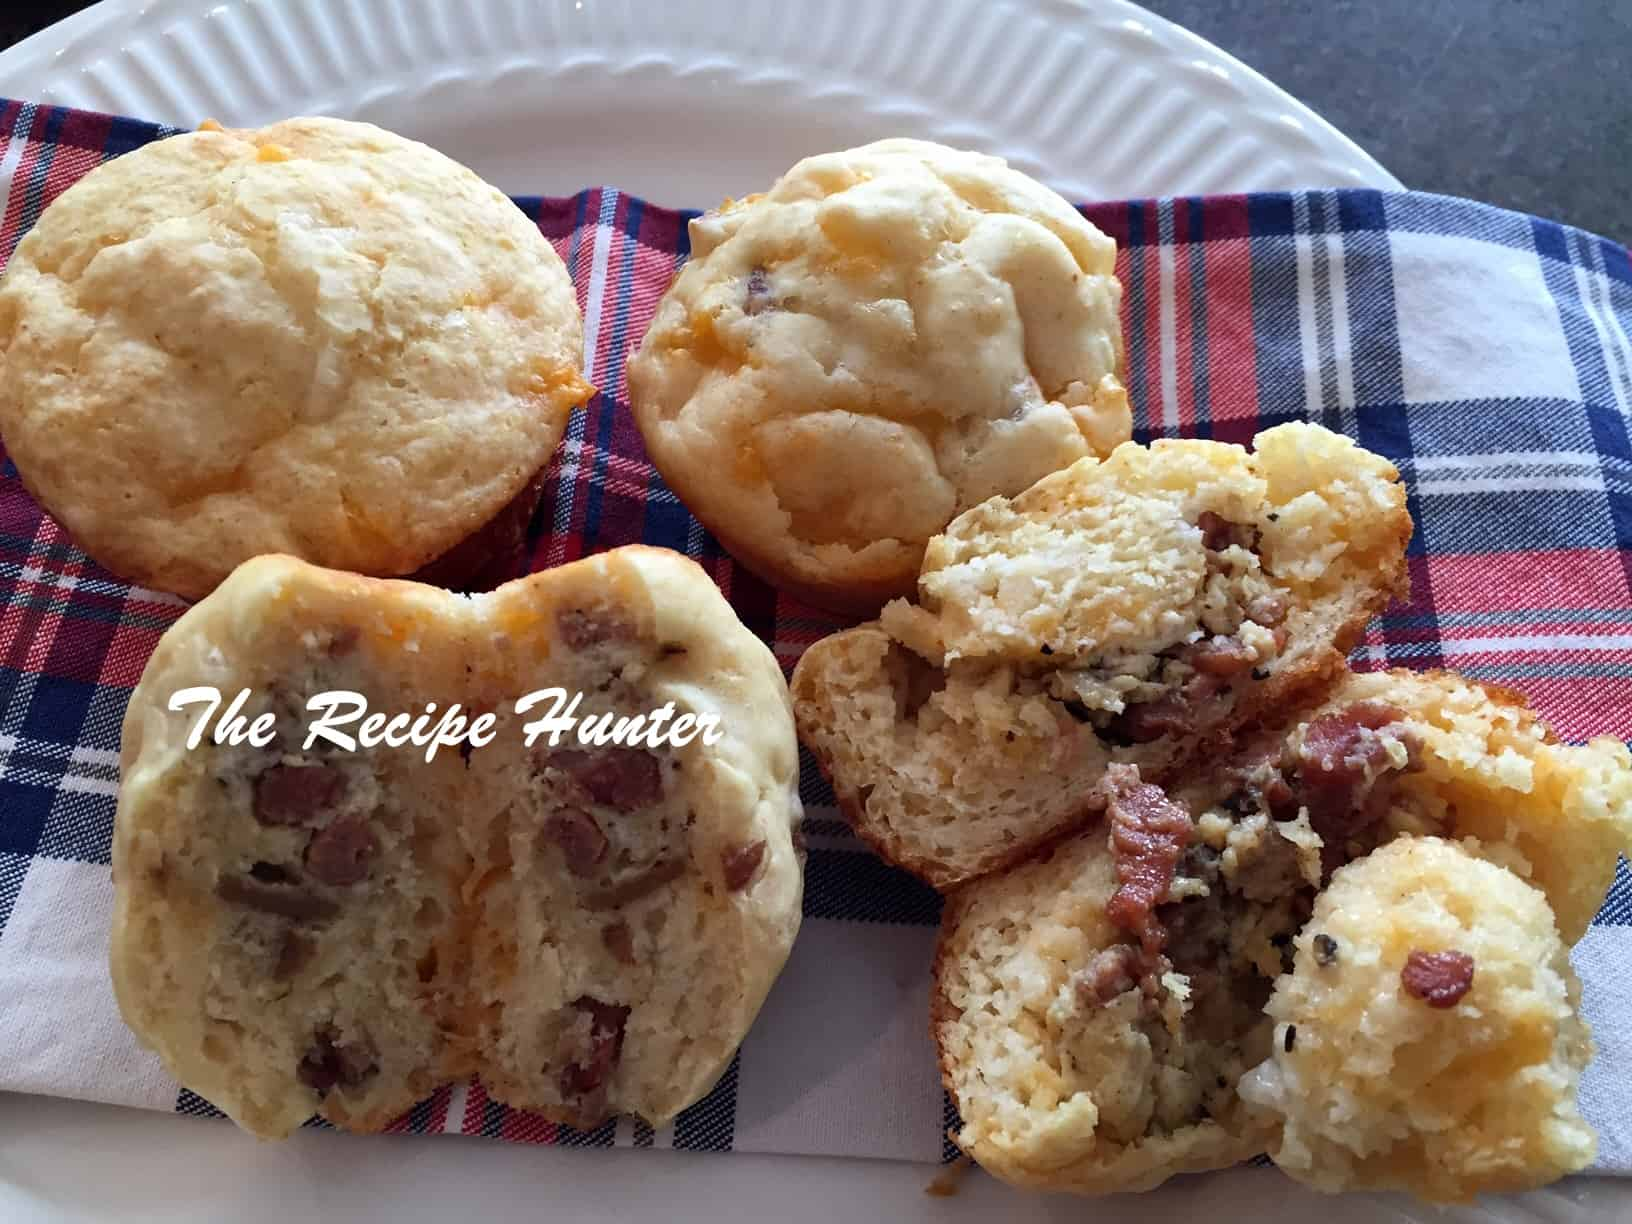 Scone with surprise filling